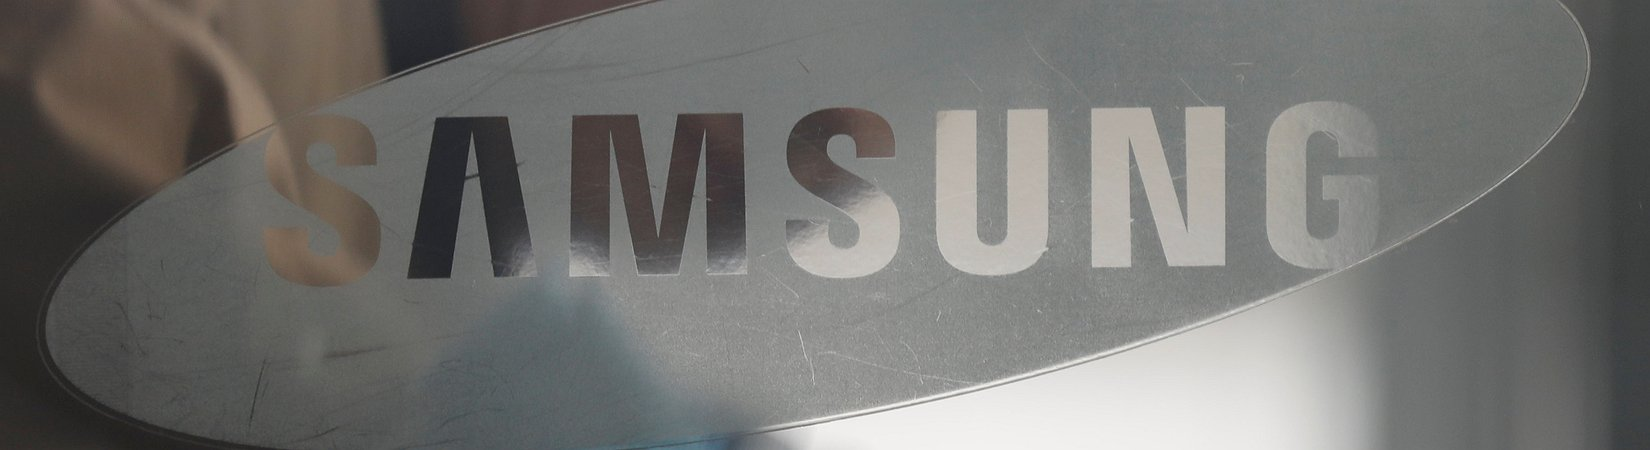 Samsung given permission to test driverless cars in South Korea